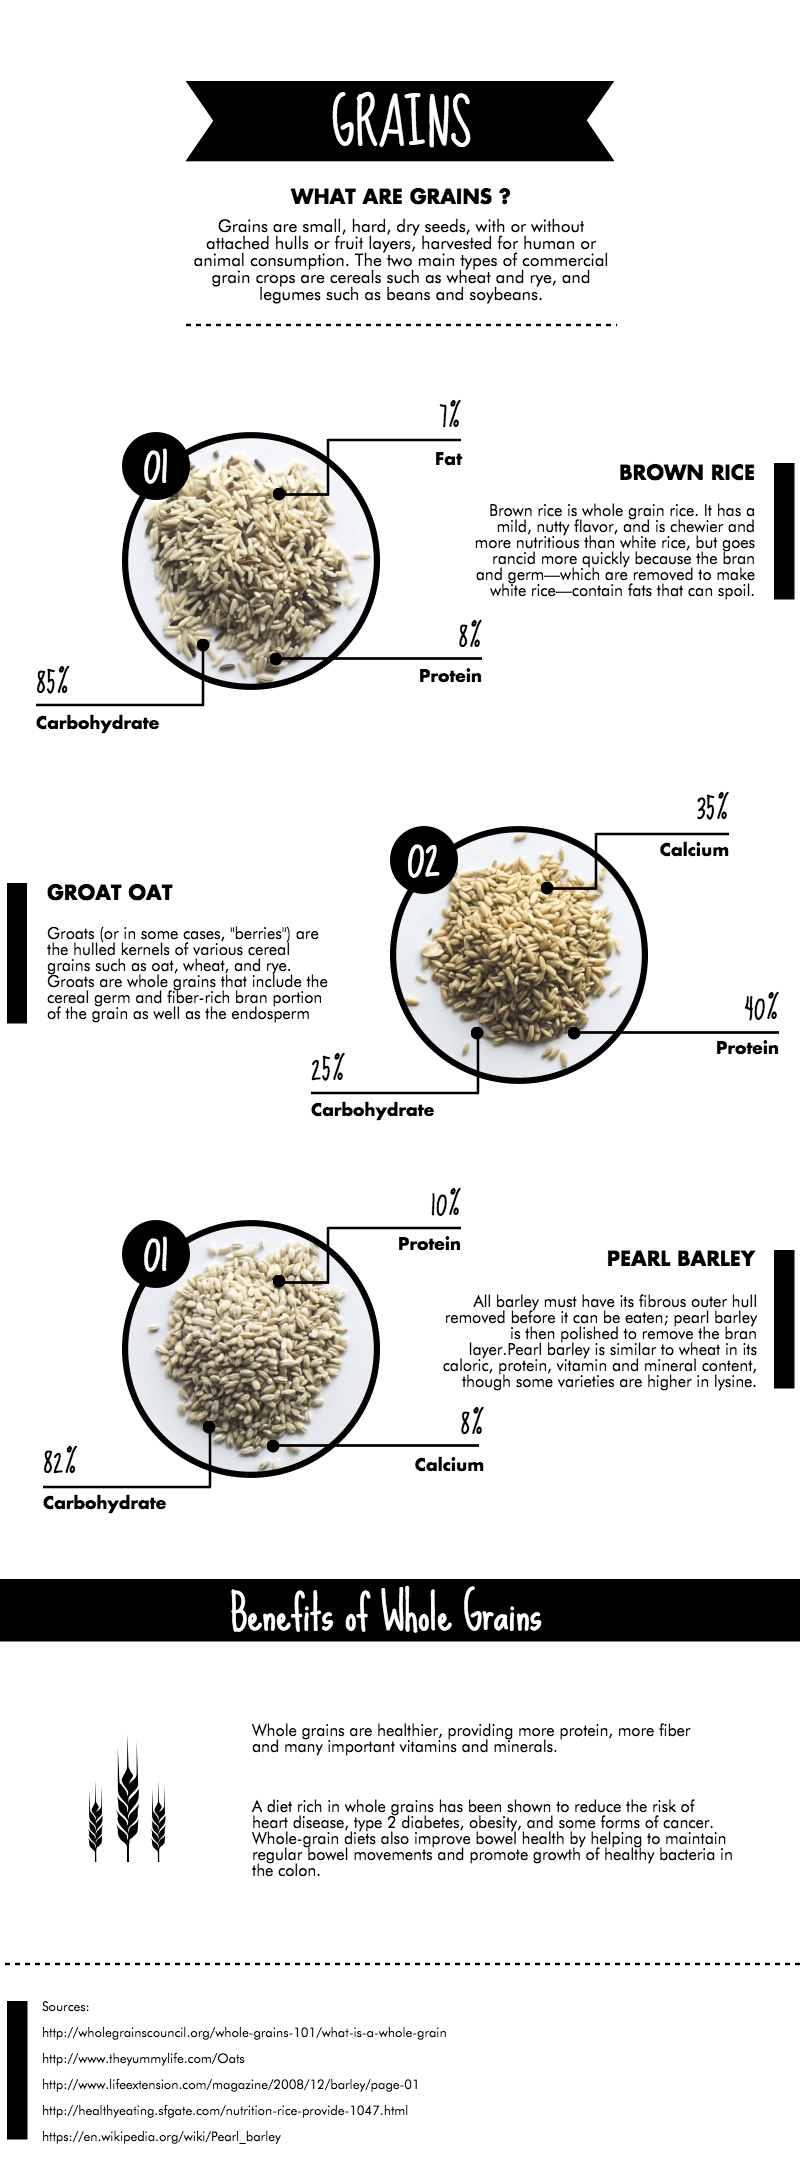 real-life-infographic-example-6896939